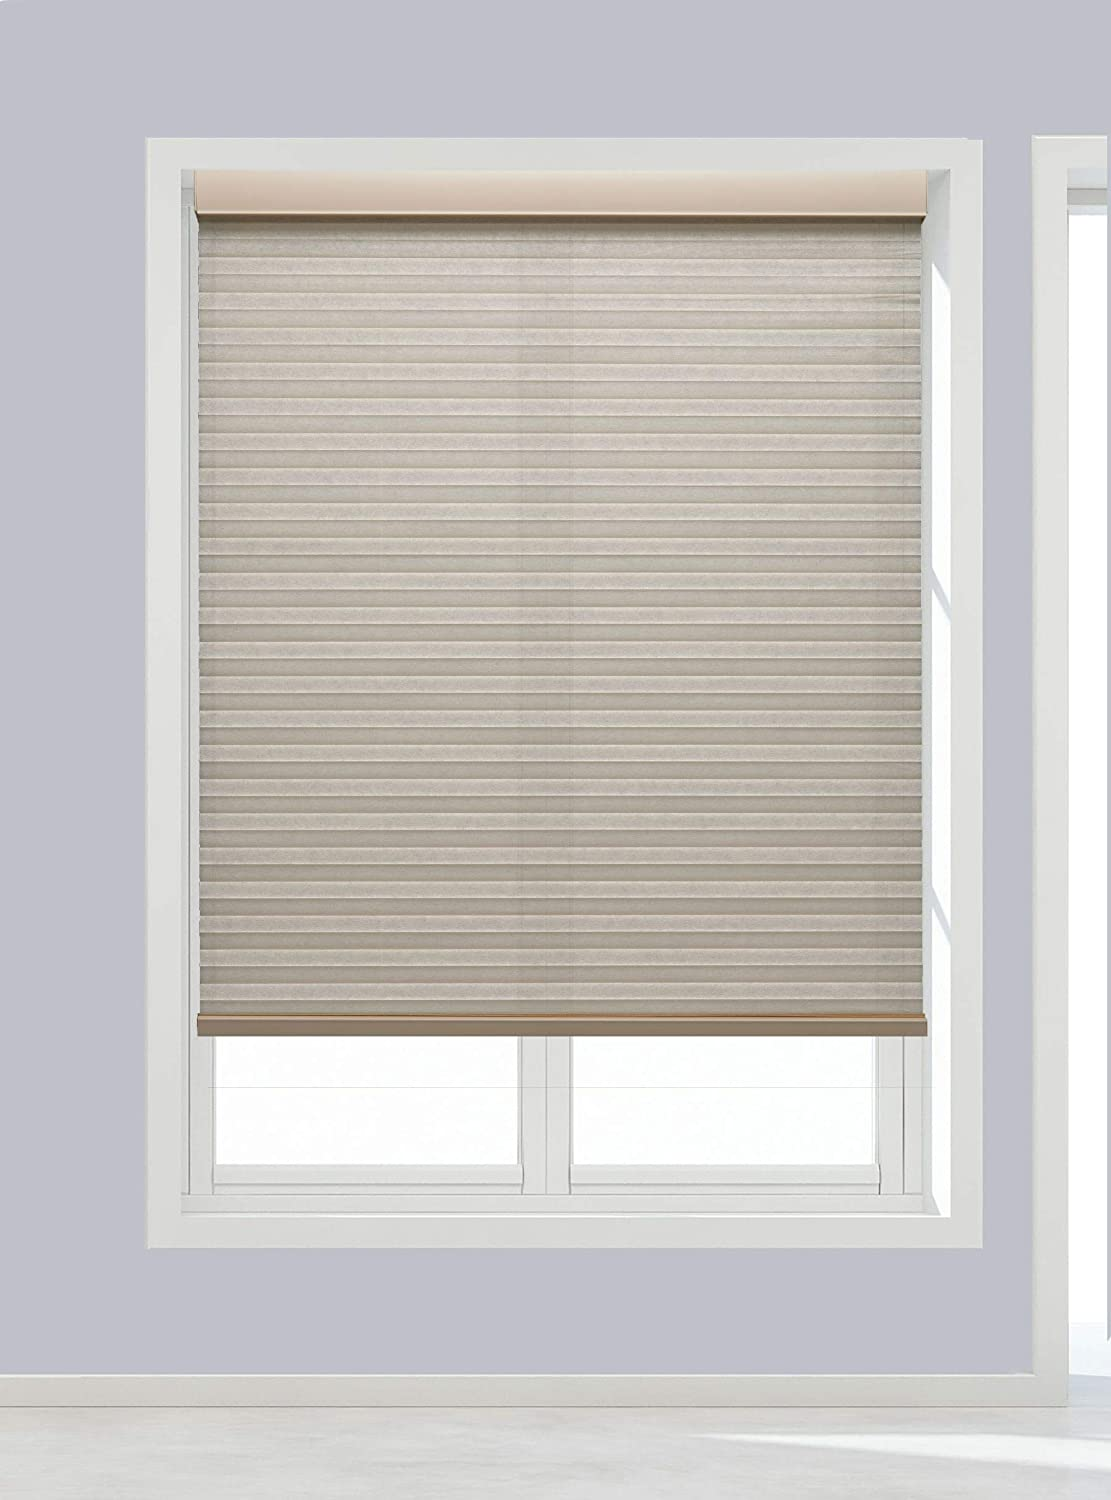 Decor Avenue Custom Cordless 39 1 2 W Muslin low-pricing to Max 64% OFF 36 x Light H 30